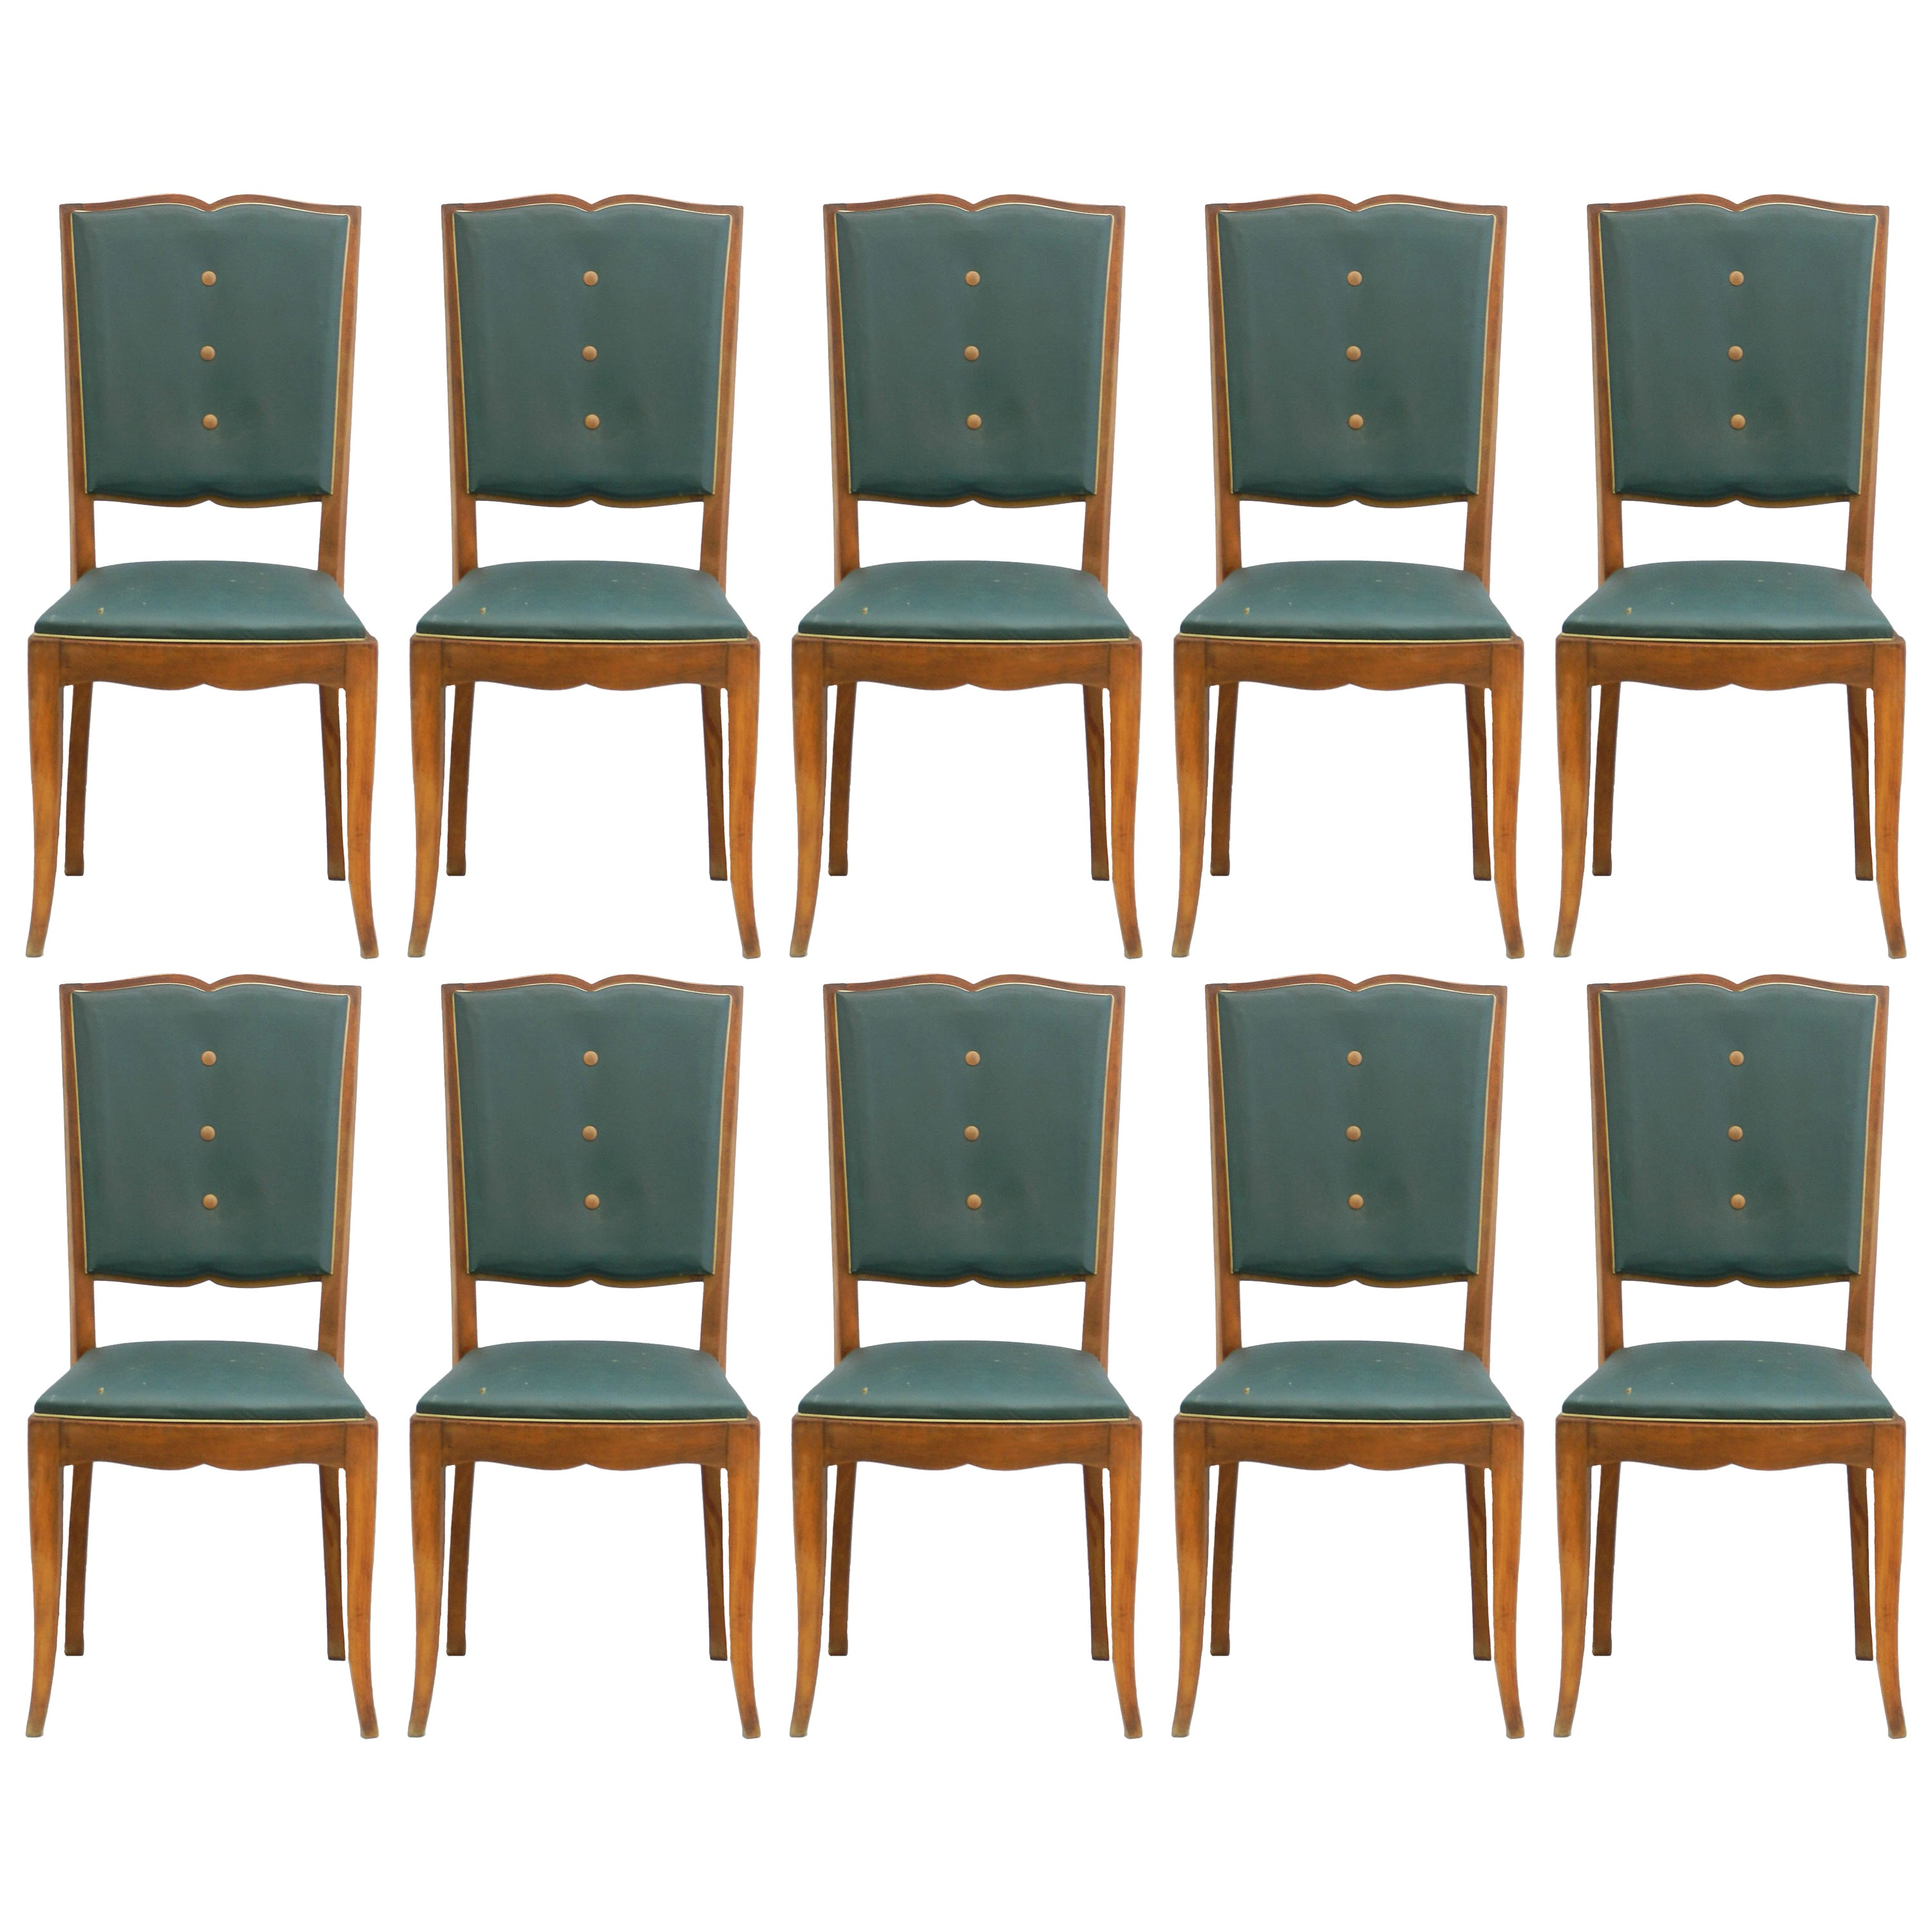 Art Deco Dining Chairs Ten Art Deco Dining Chairs French Moustache Back To Restore Or Customized